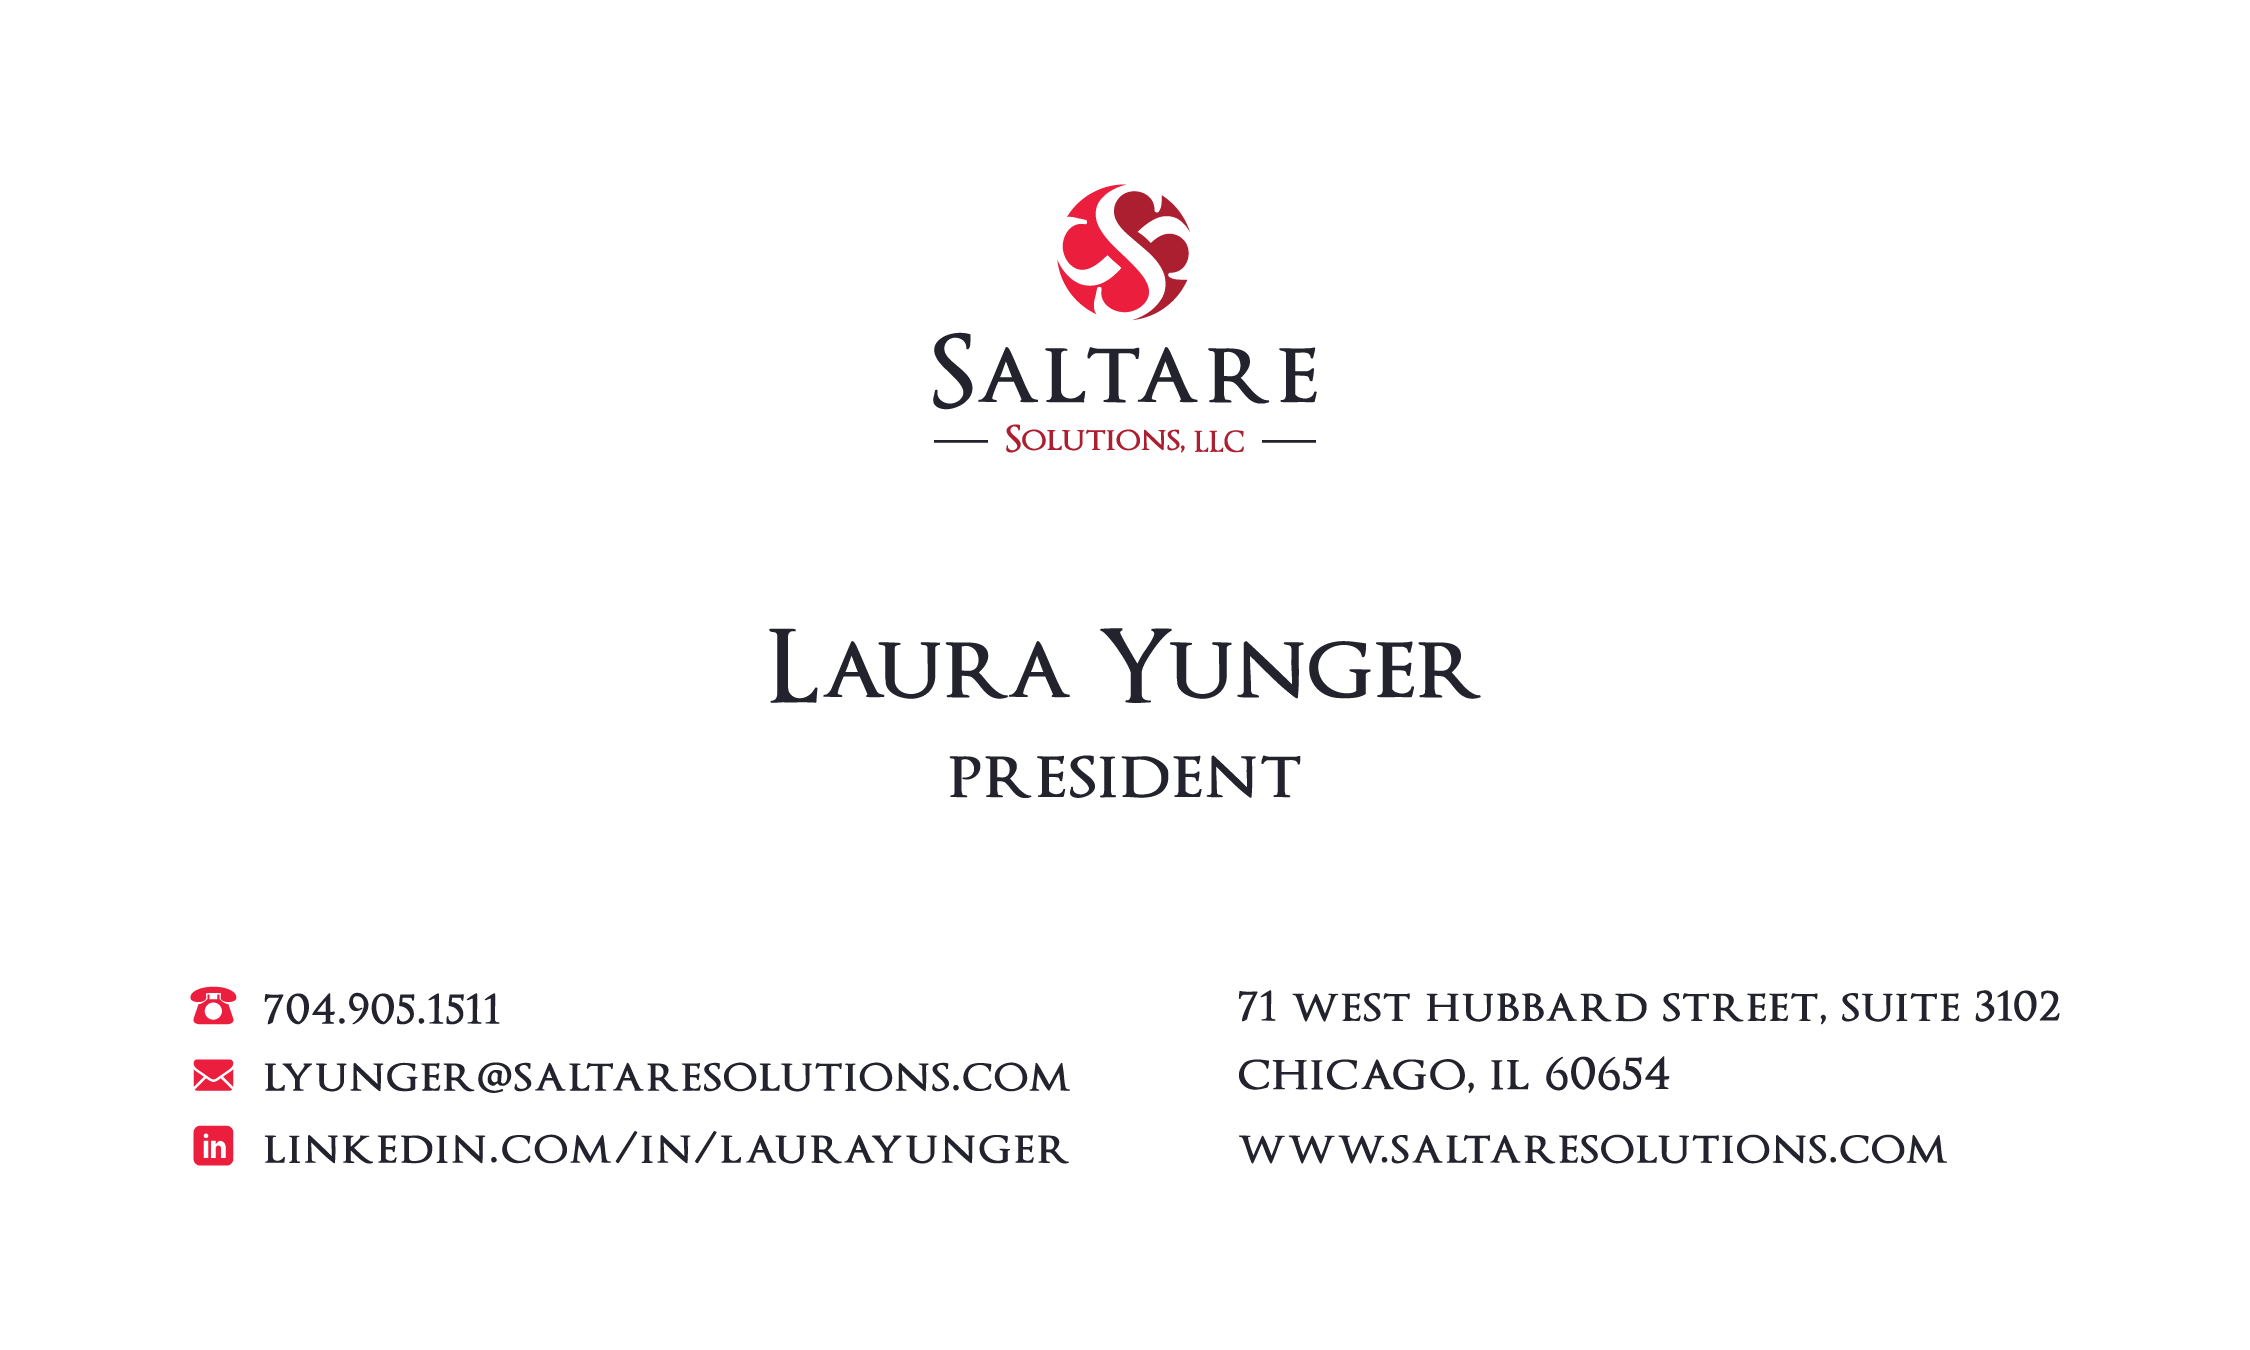 Saltare solutions business card